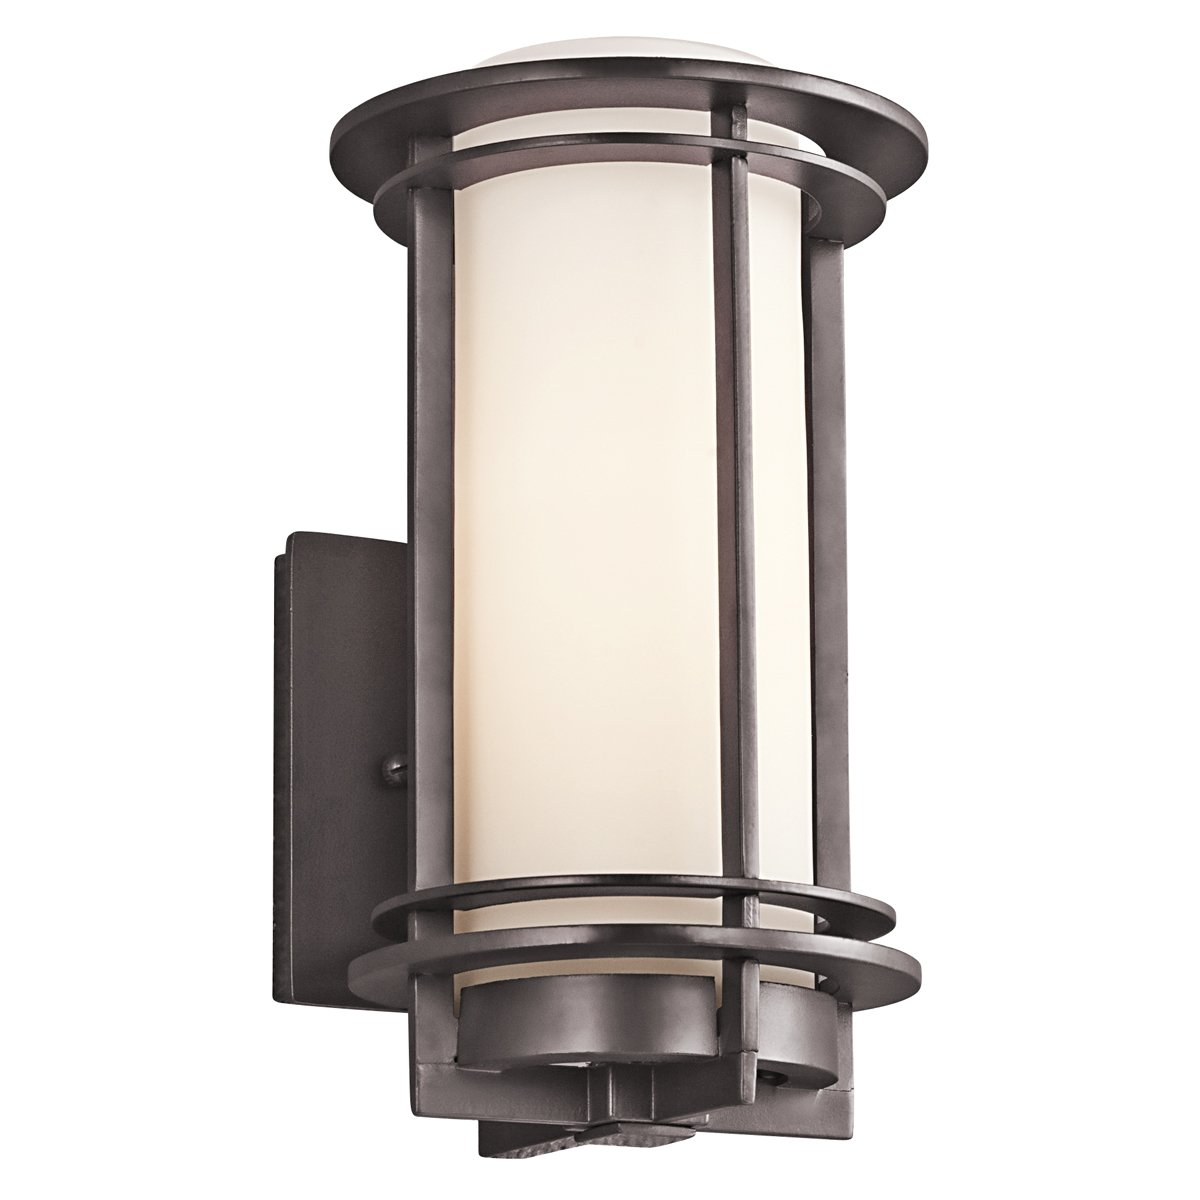 Outdoor Sconce Lights Kichler 49344az one light outdoor wall mount wall sconces amazon workwithnaturefo